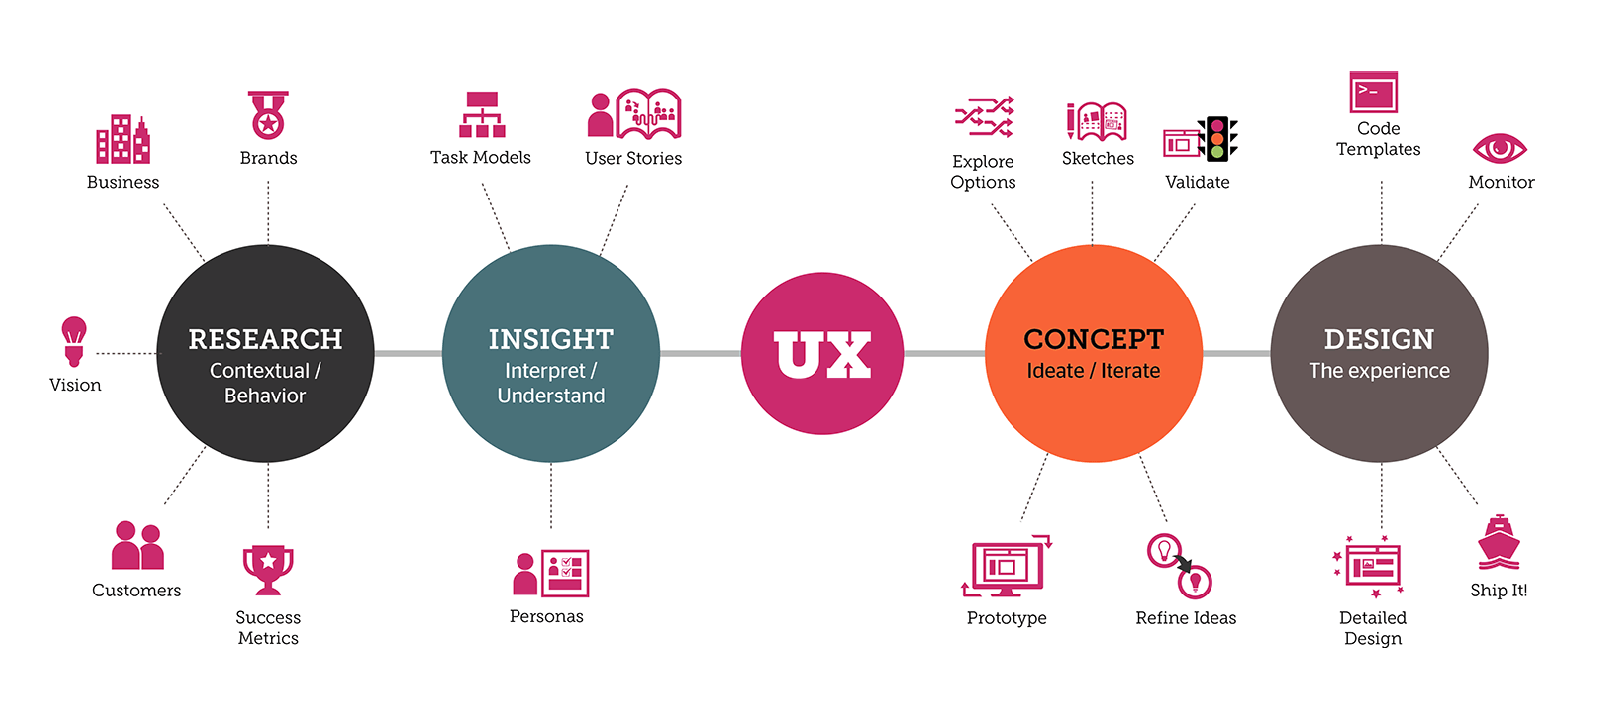 importance-of-ux-design-why-is-it-important-image